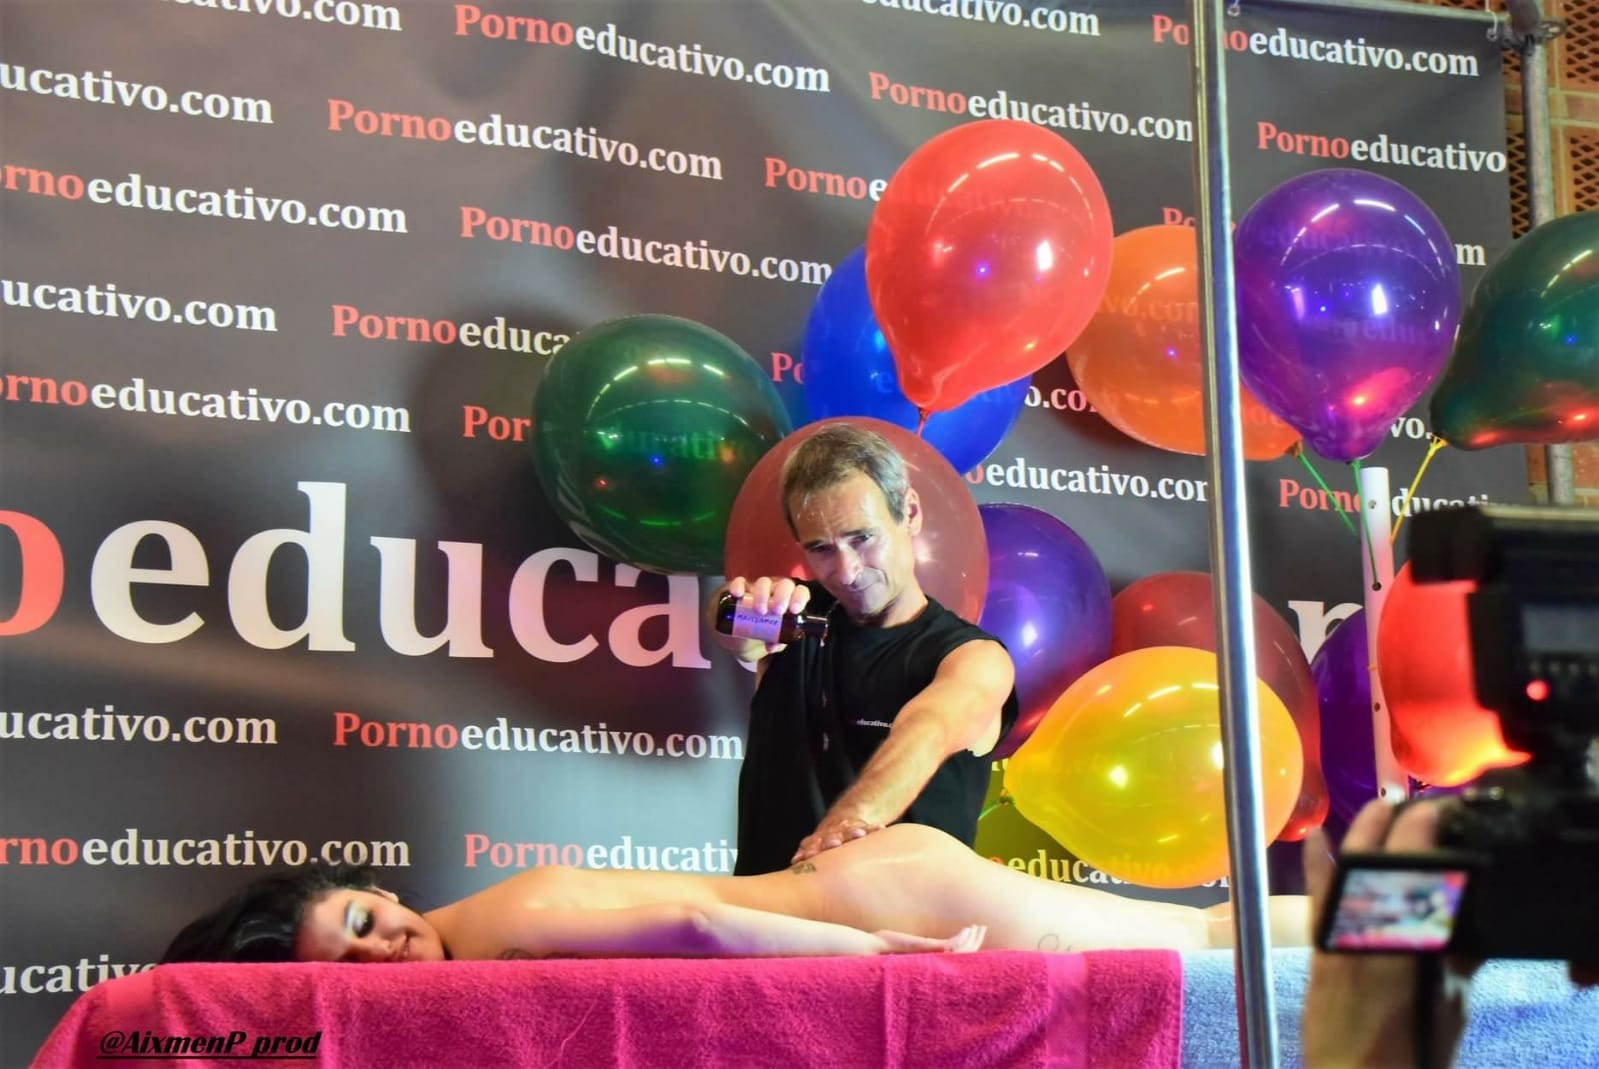 Erotic massage demostration on the stage of the Pornoeducativo stand